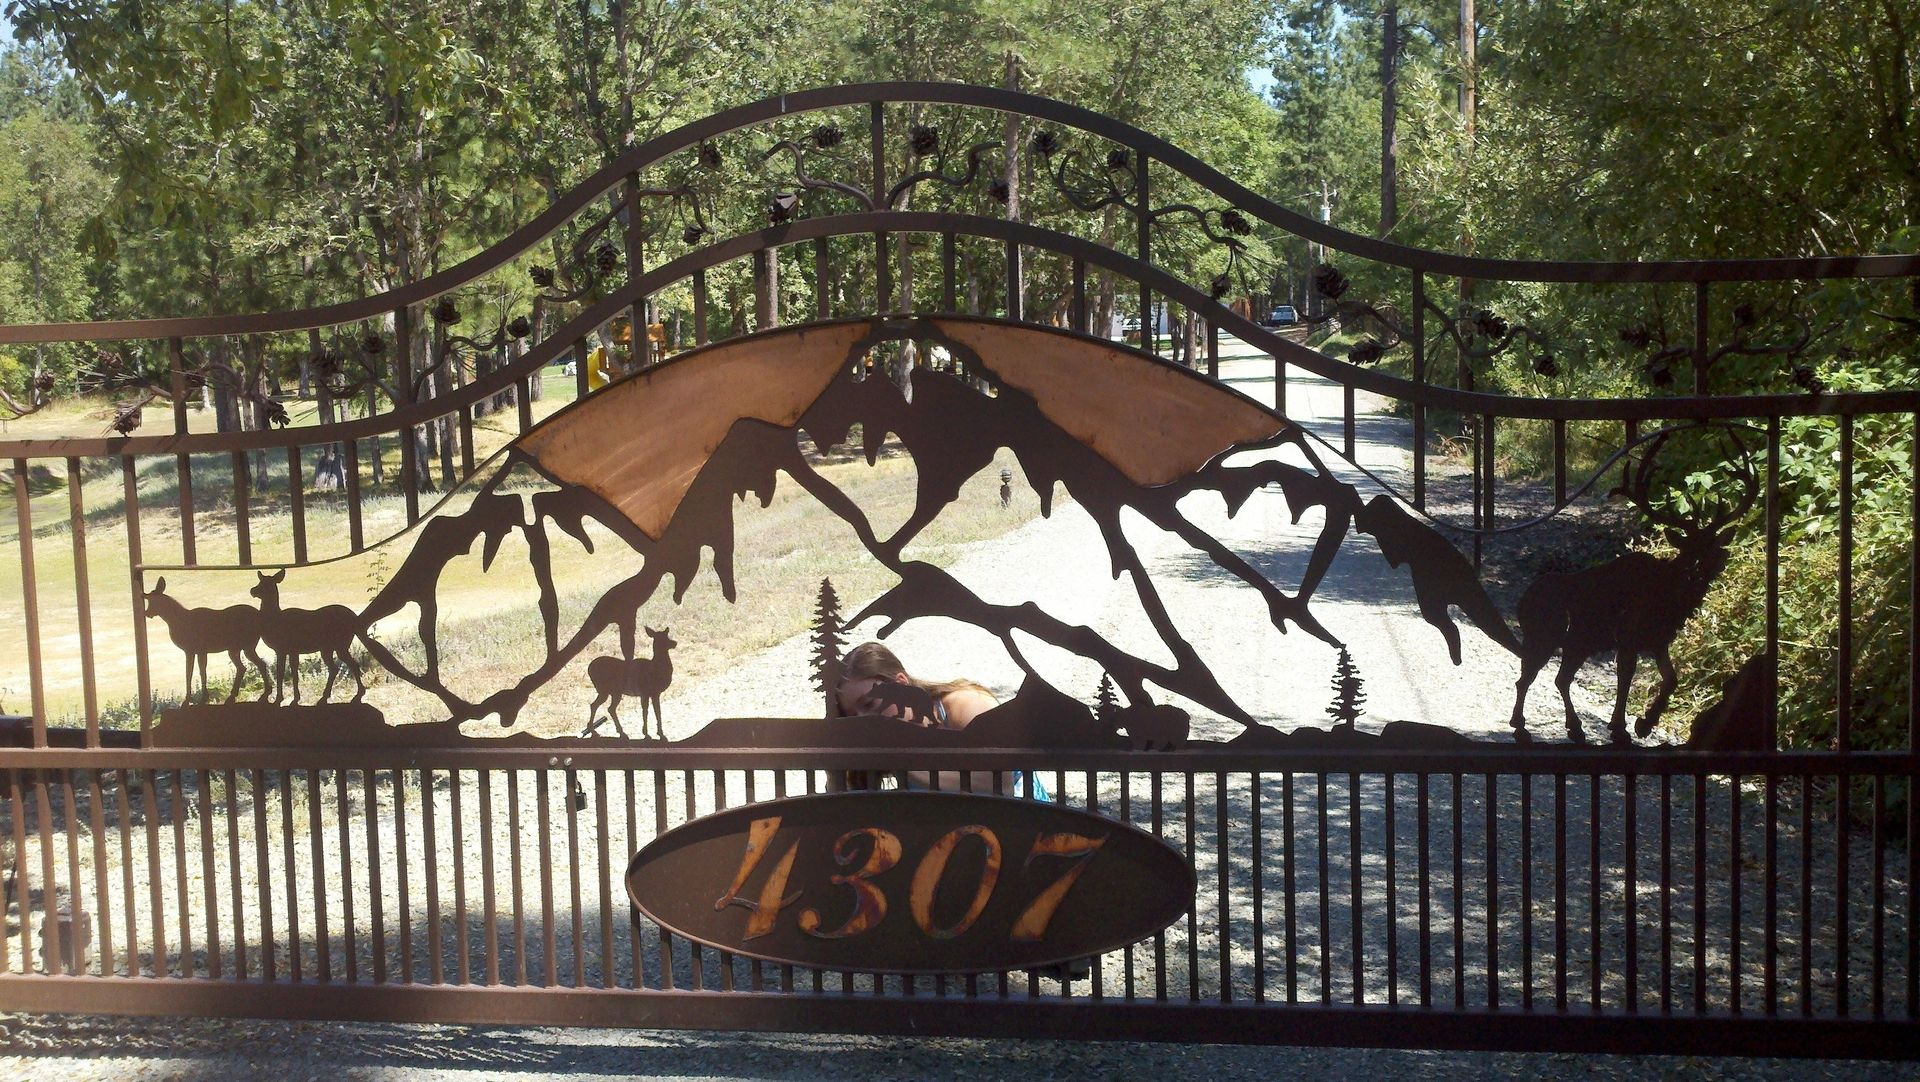 Hand Crafted Custom Metal Gate Art By Ftt Design